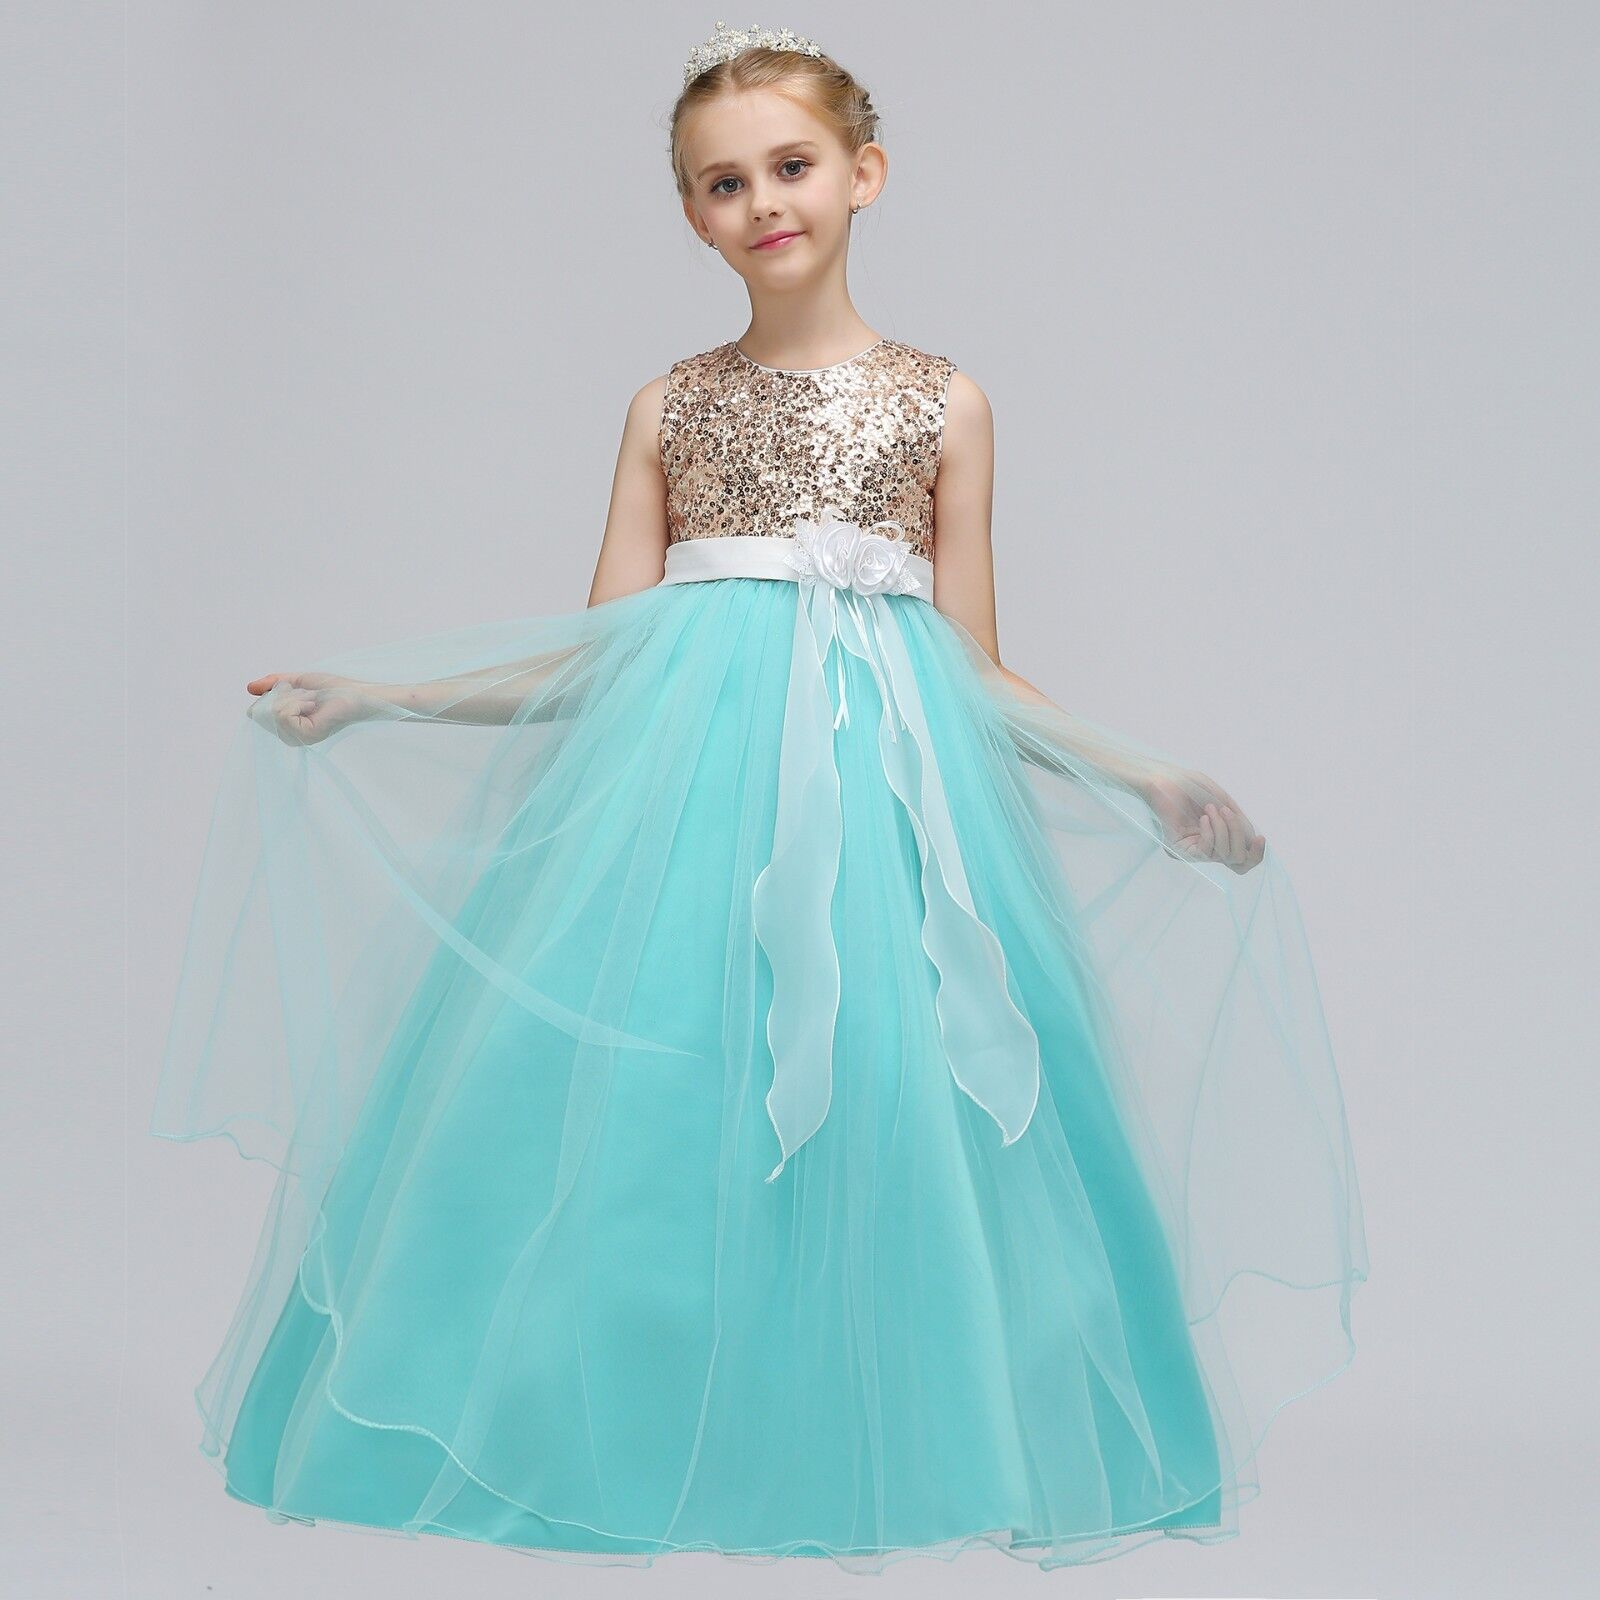 Childrens Girls 5-Layer Gold Sequined Tulle Fancy Wedding Party ...